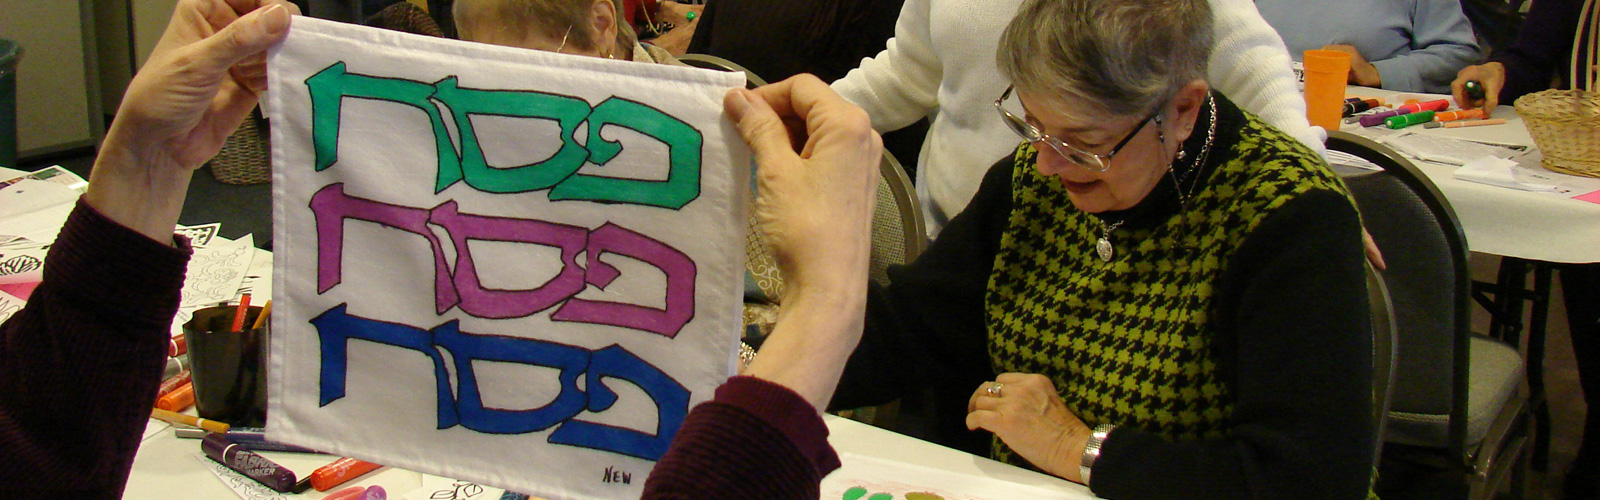 Lifelong Jewish Learning is a core value upheld by FJC and Reform Judaism